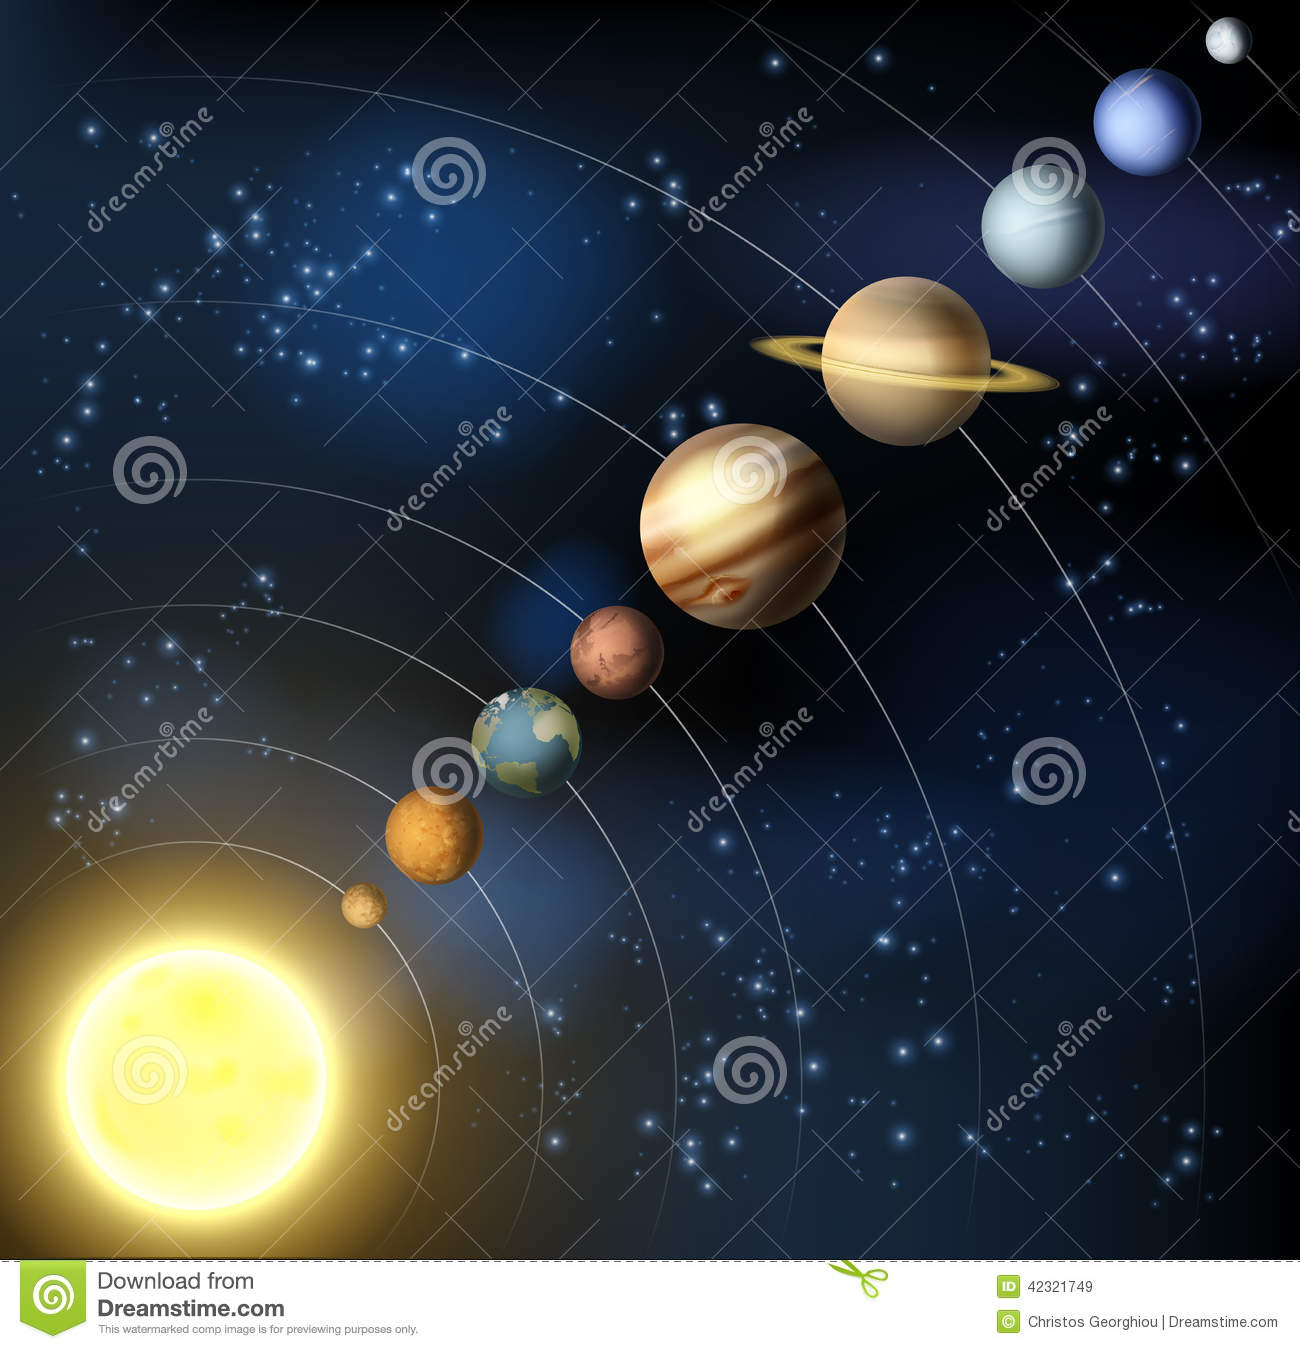 Solar system from space stock vector. Illustration of ...